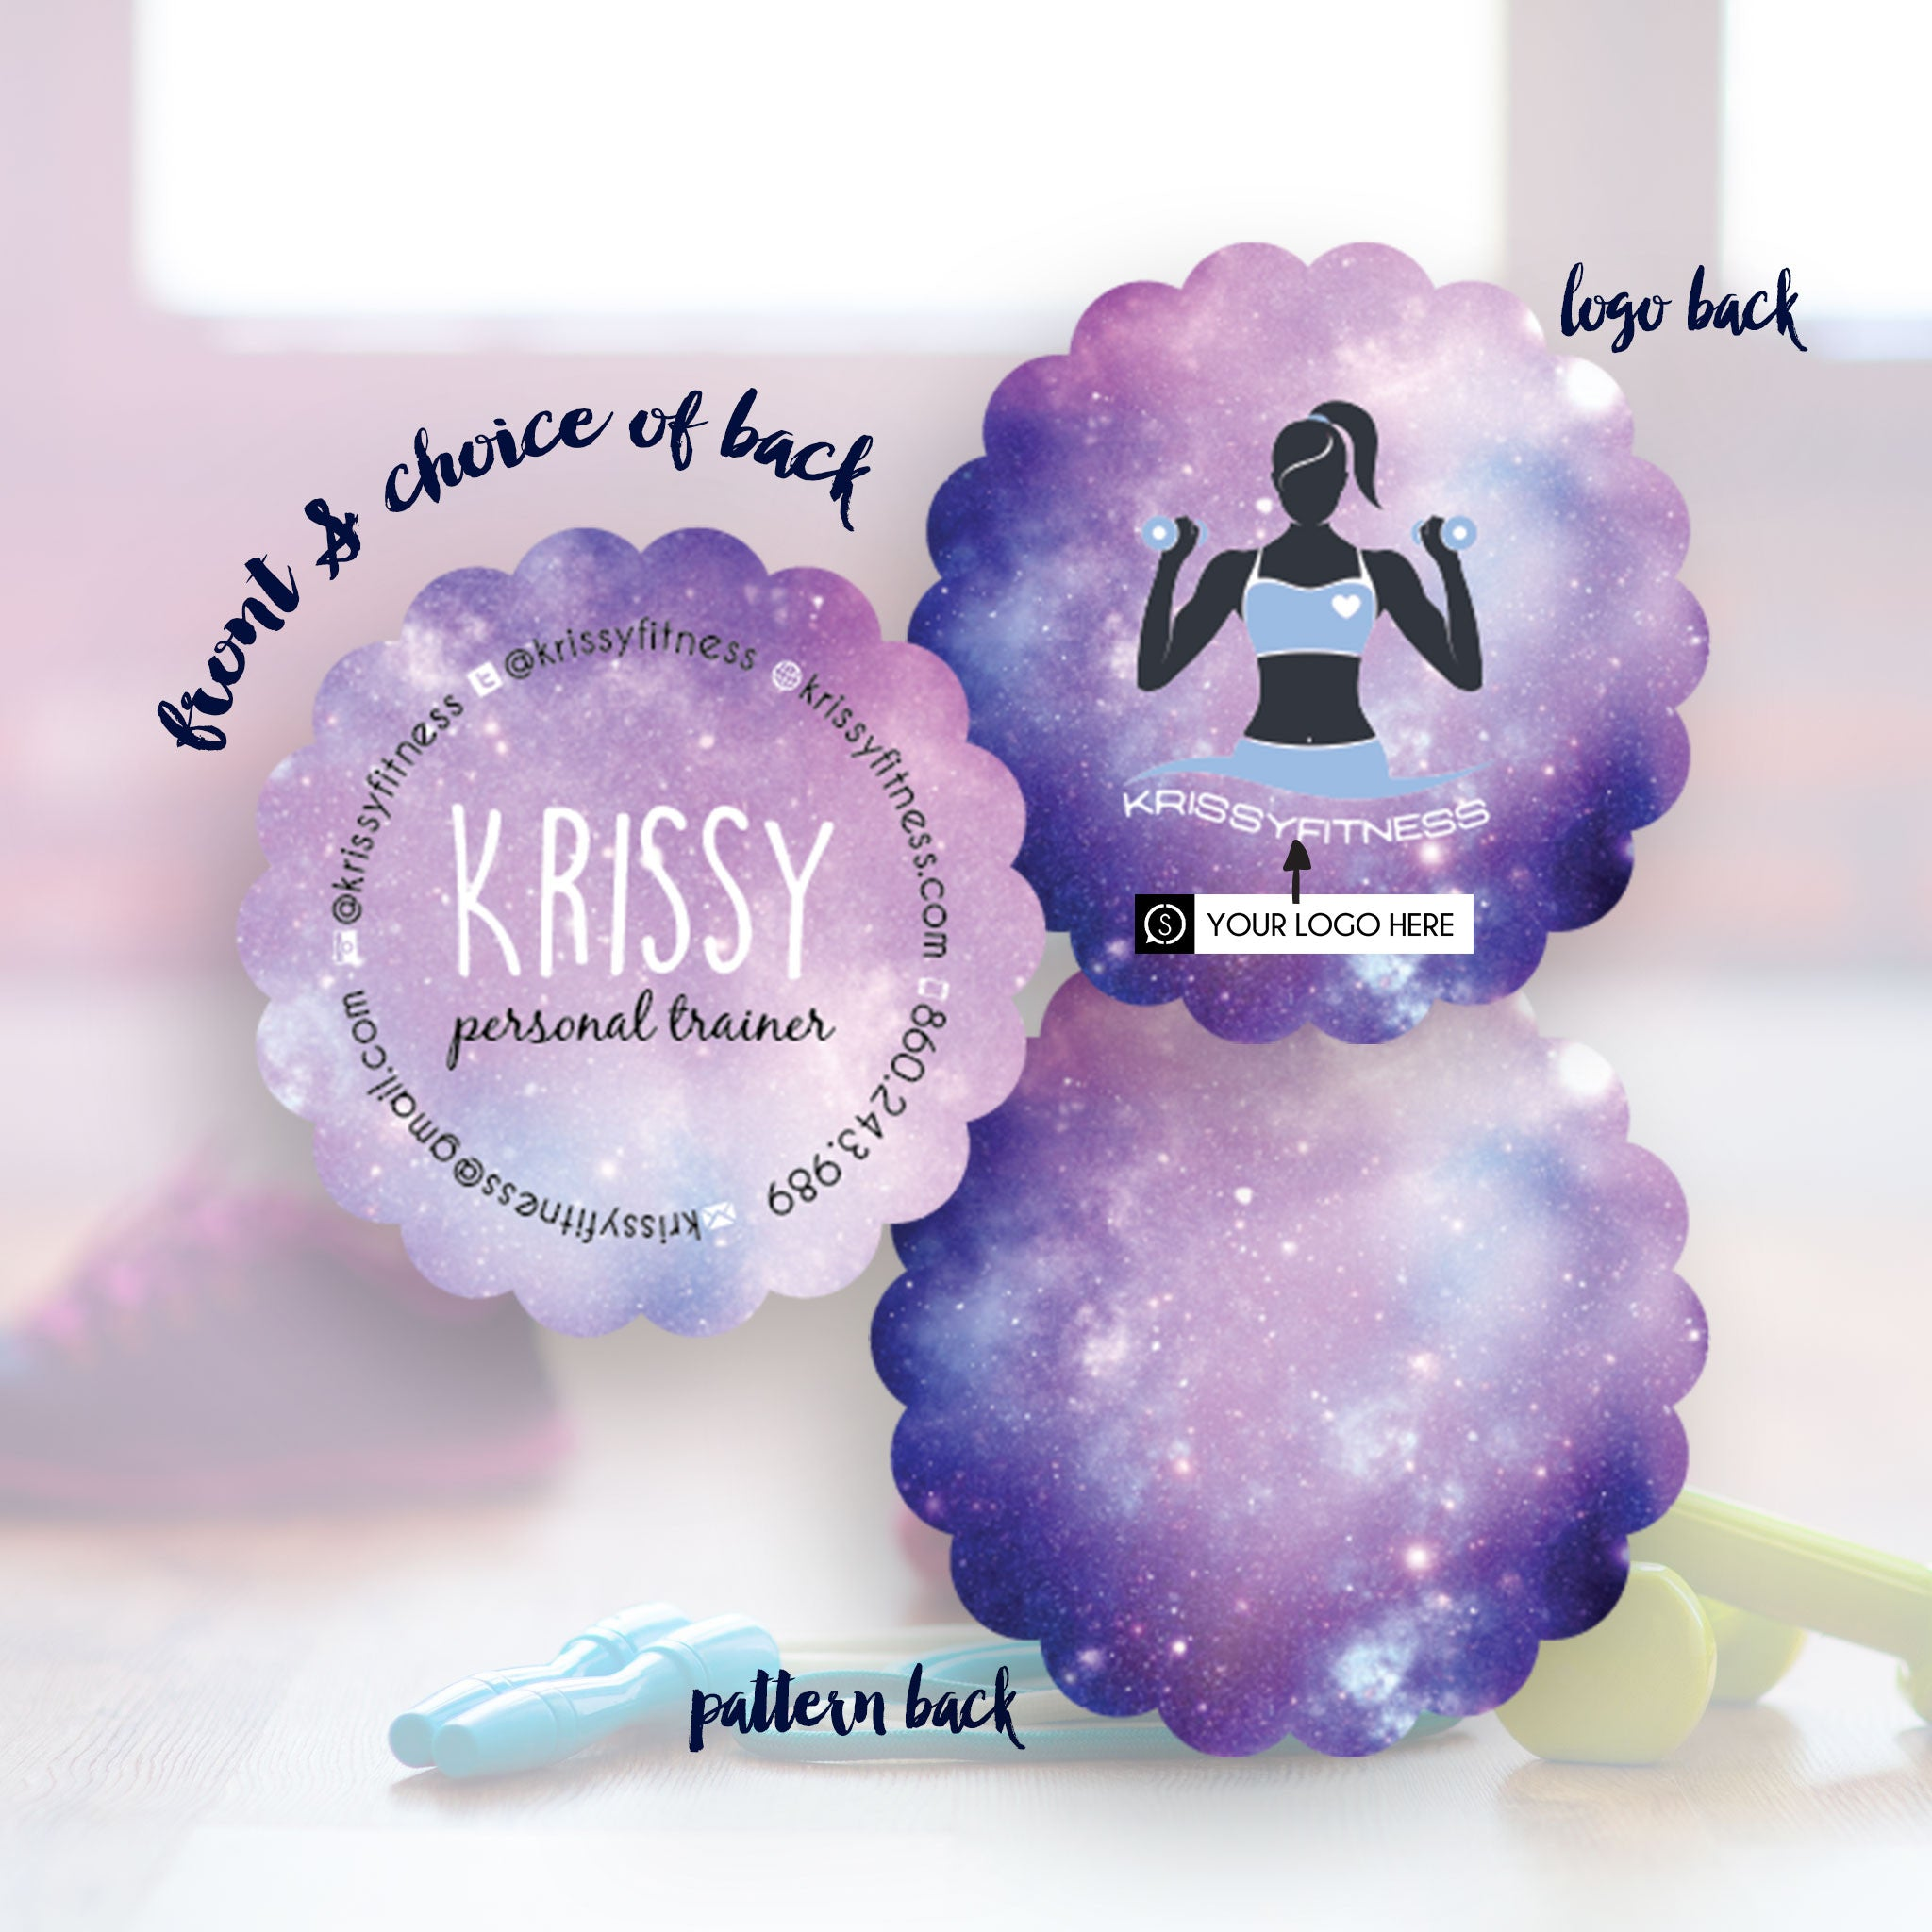 Krissy - Business Cards